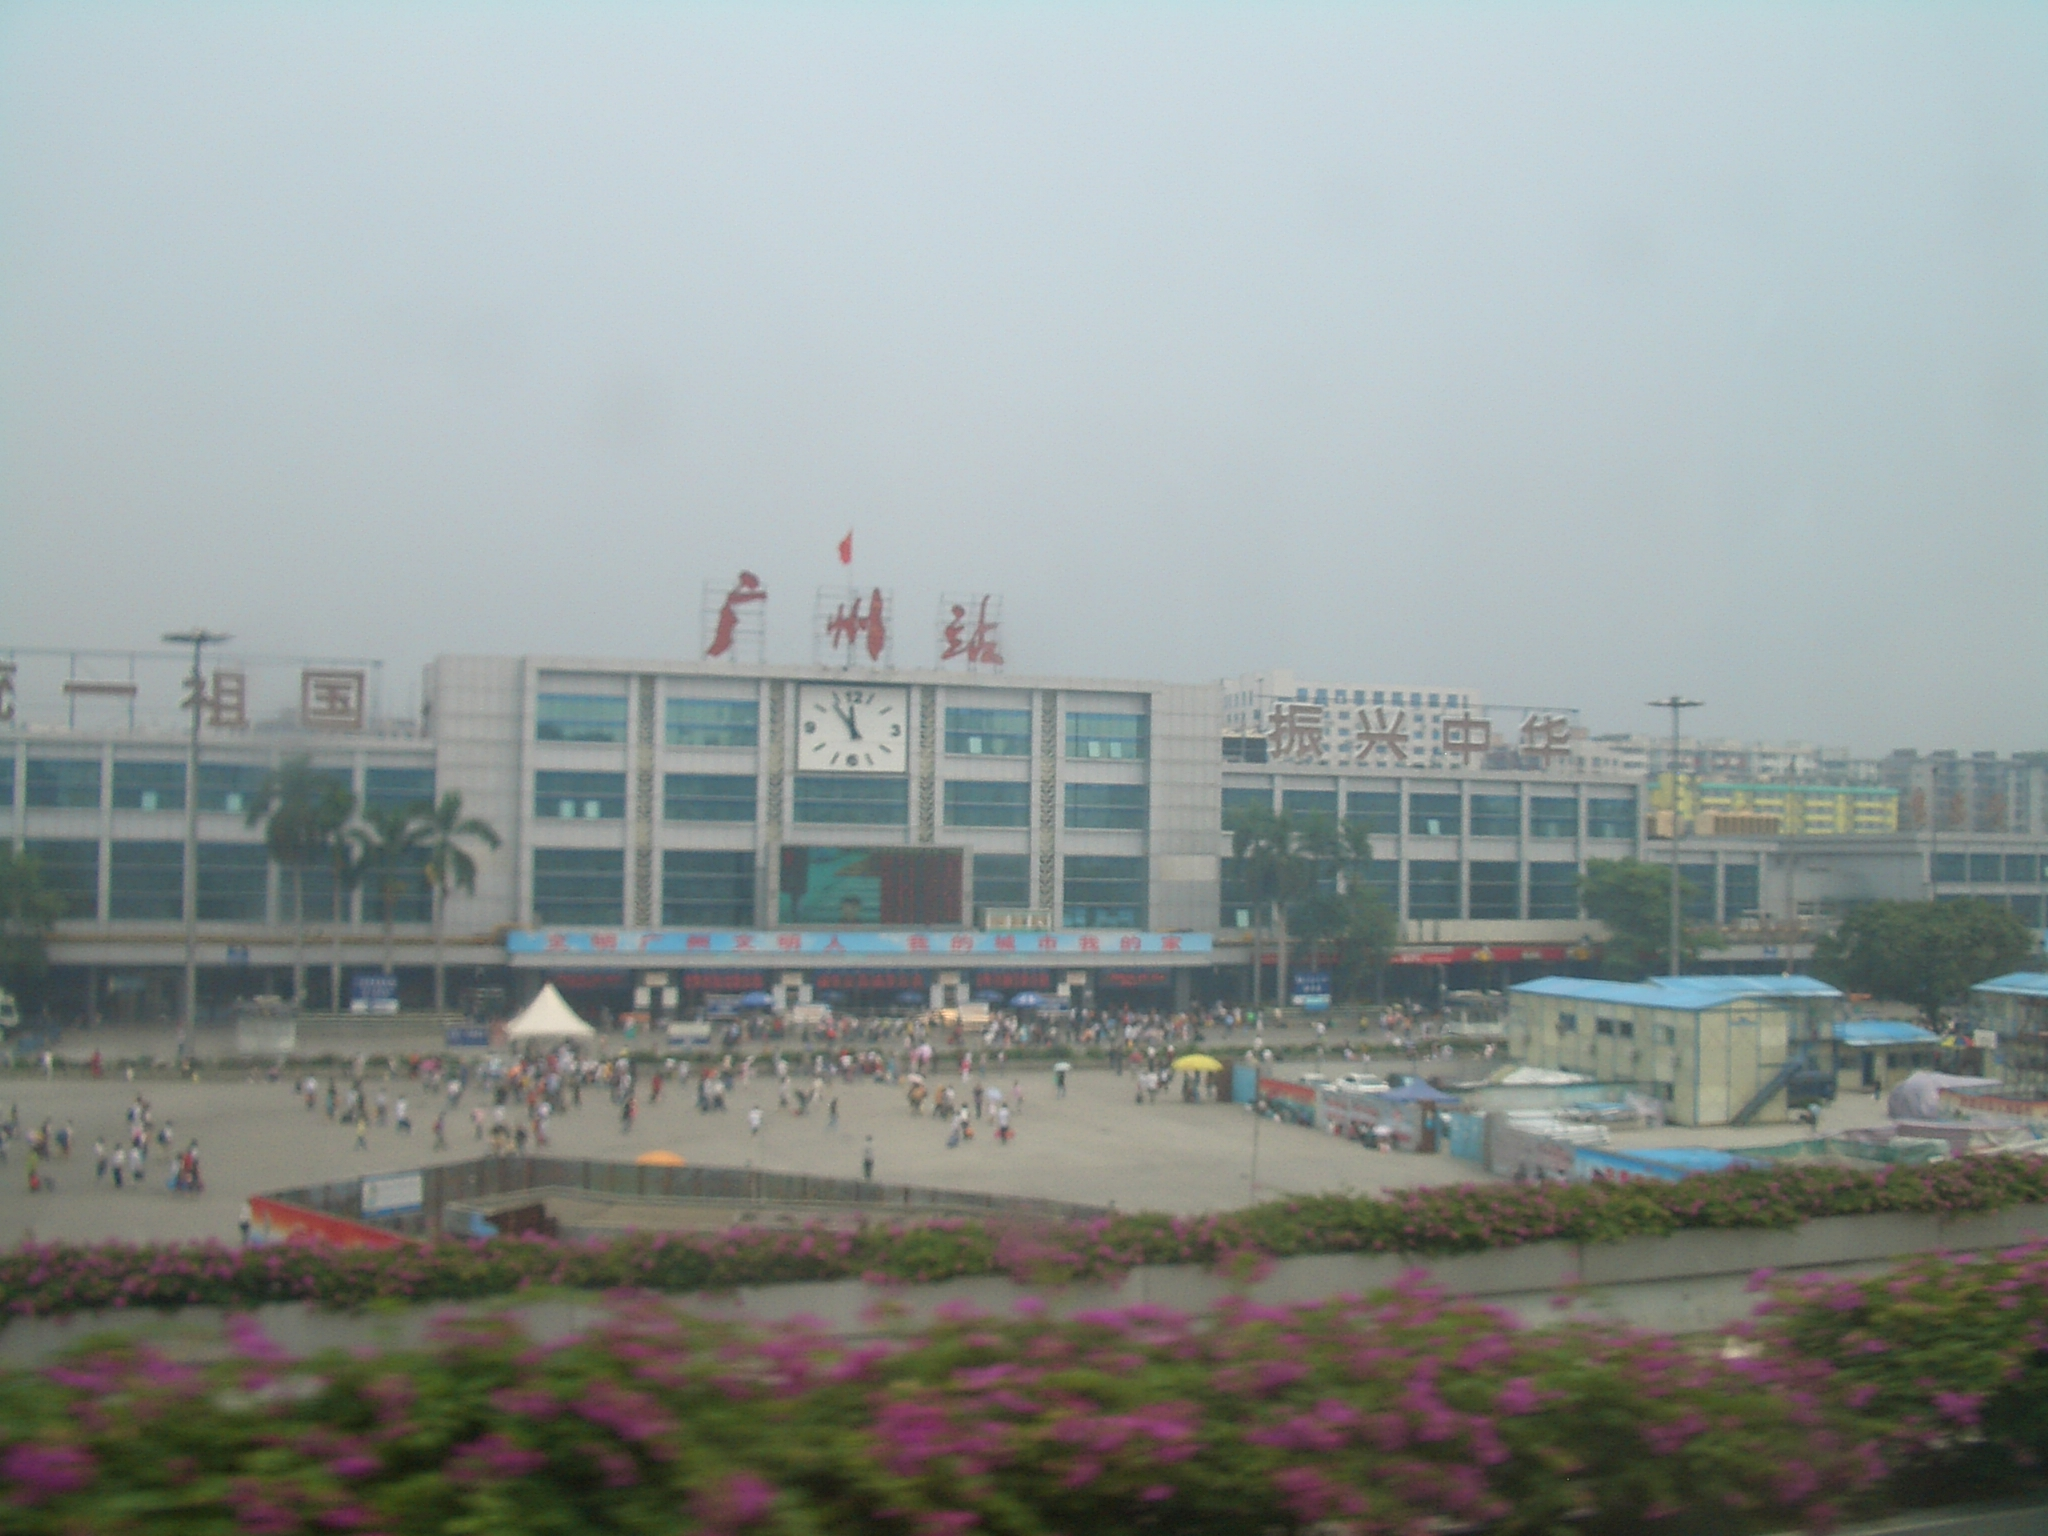 http://upload.wikimedia.org/wikipedia/commons/4/4e/Guangzhou-Main-Train-Station-0615.jpg